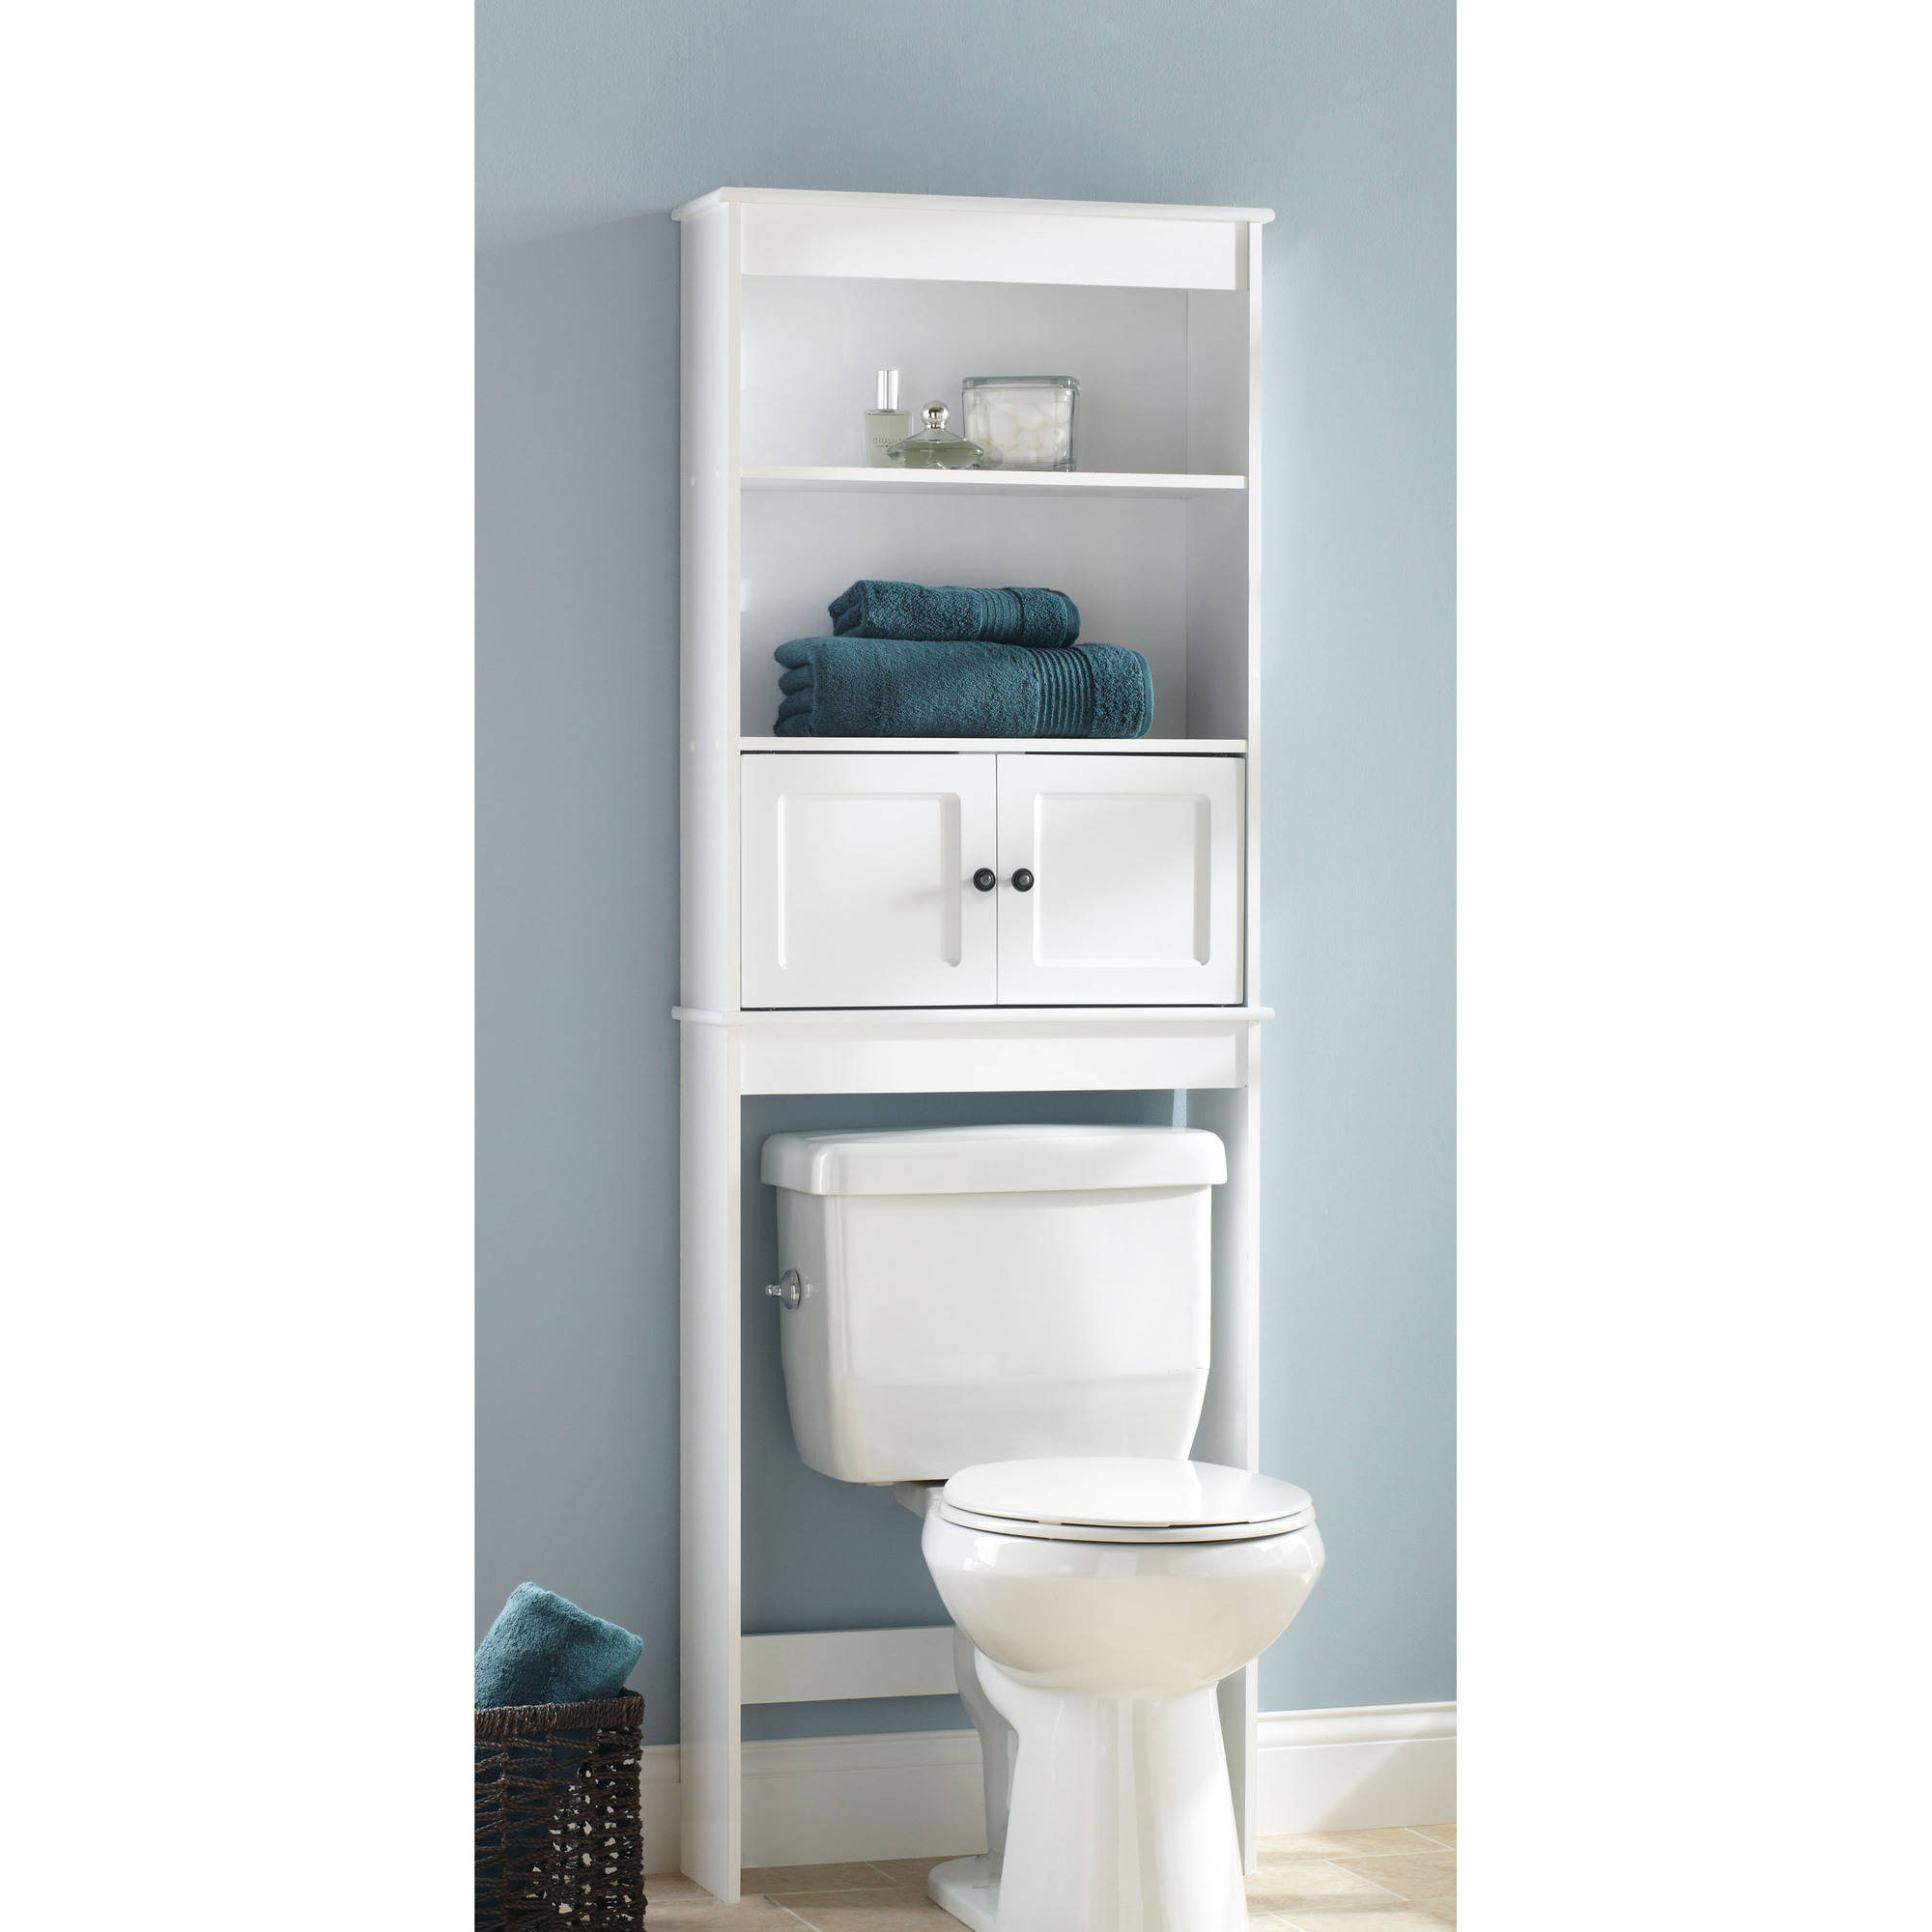 bathroom space saver hawthorne place white wood spacesaver bathroom shelf - walmart.com TSWLREK